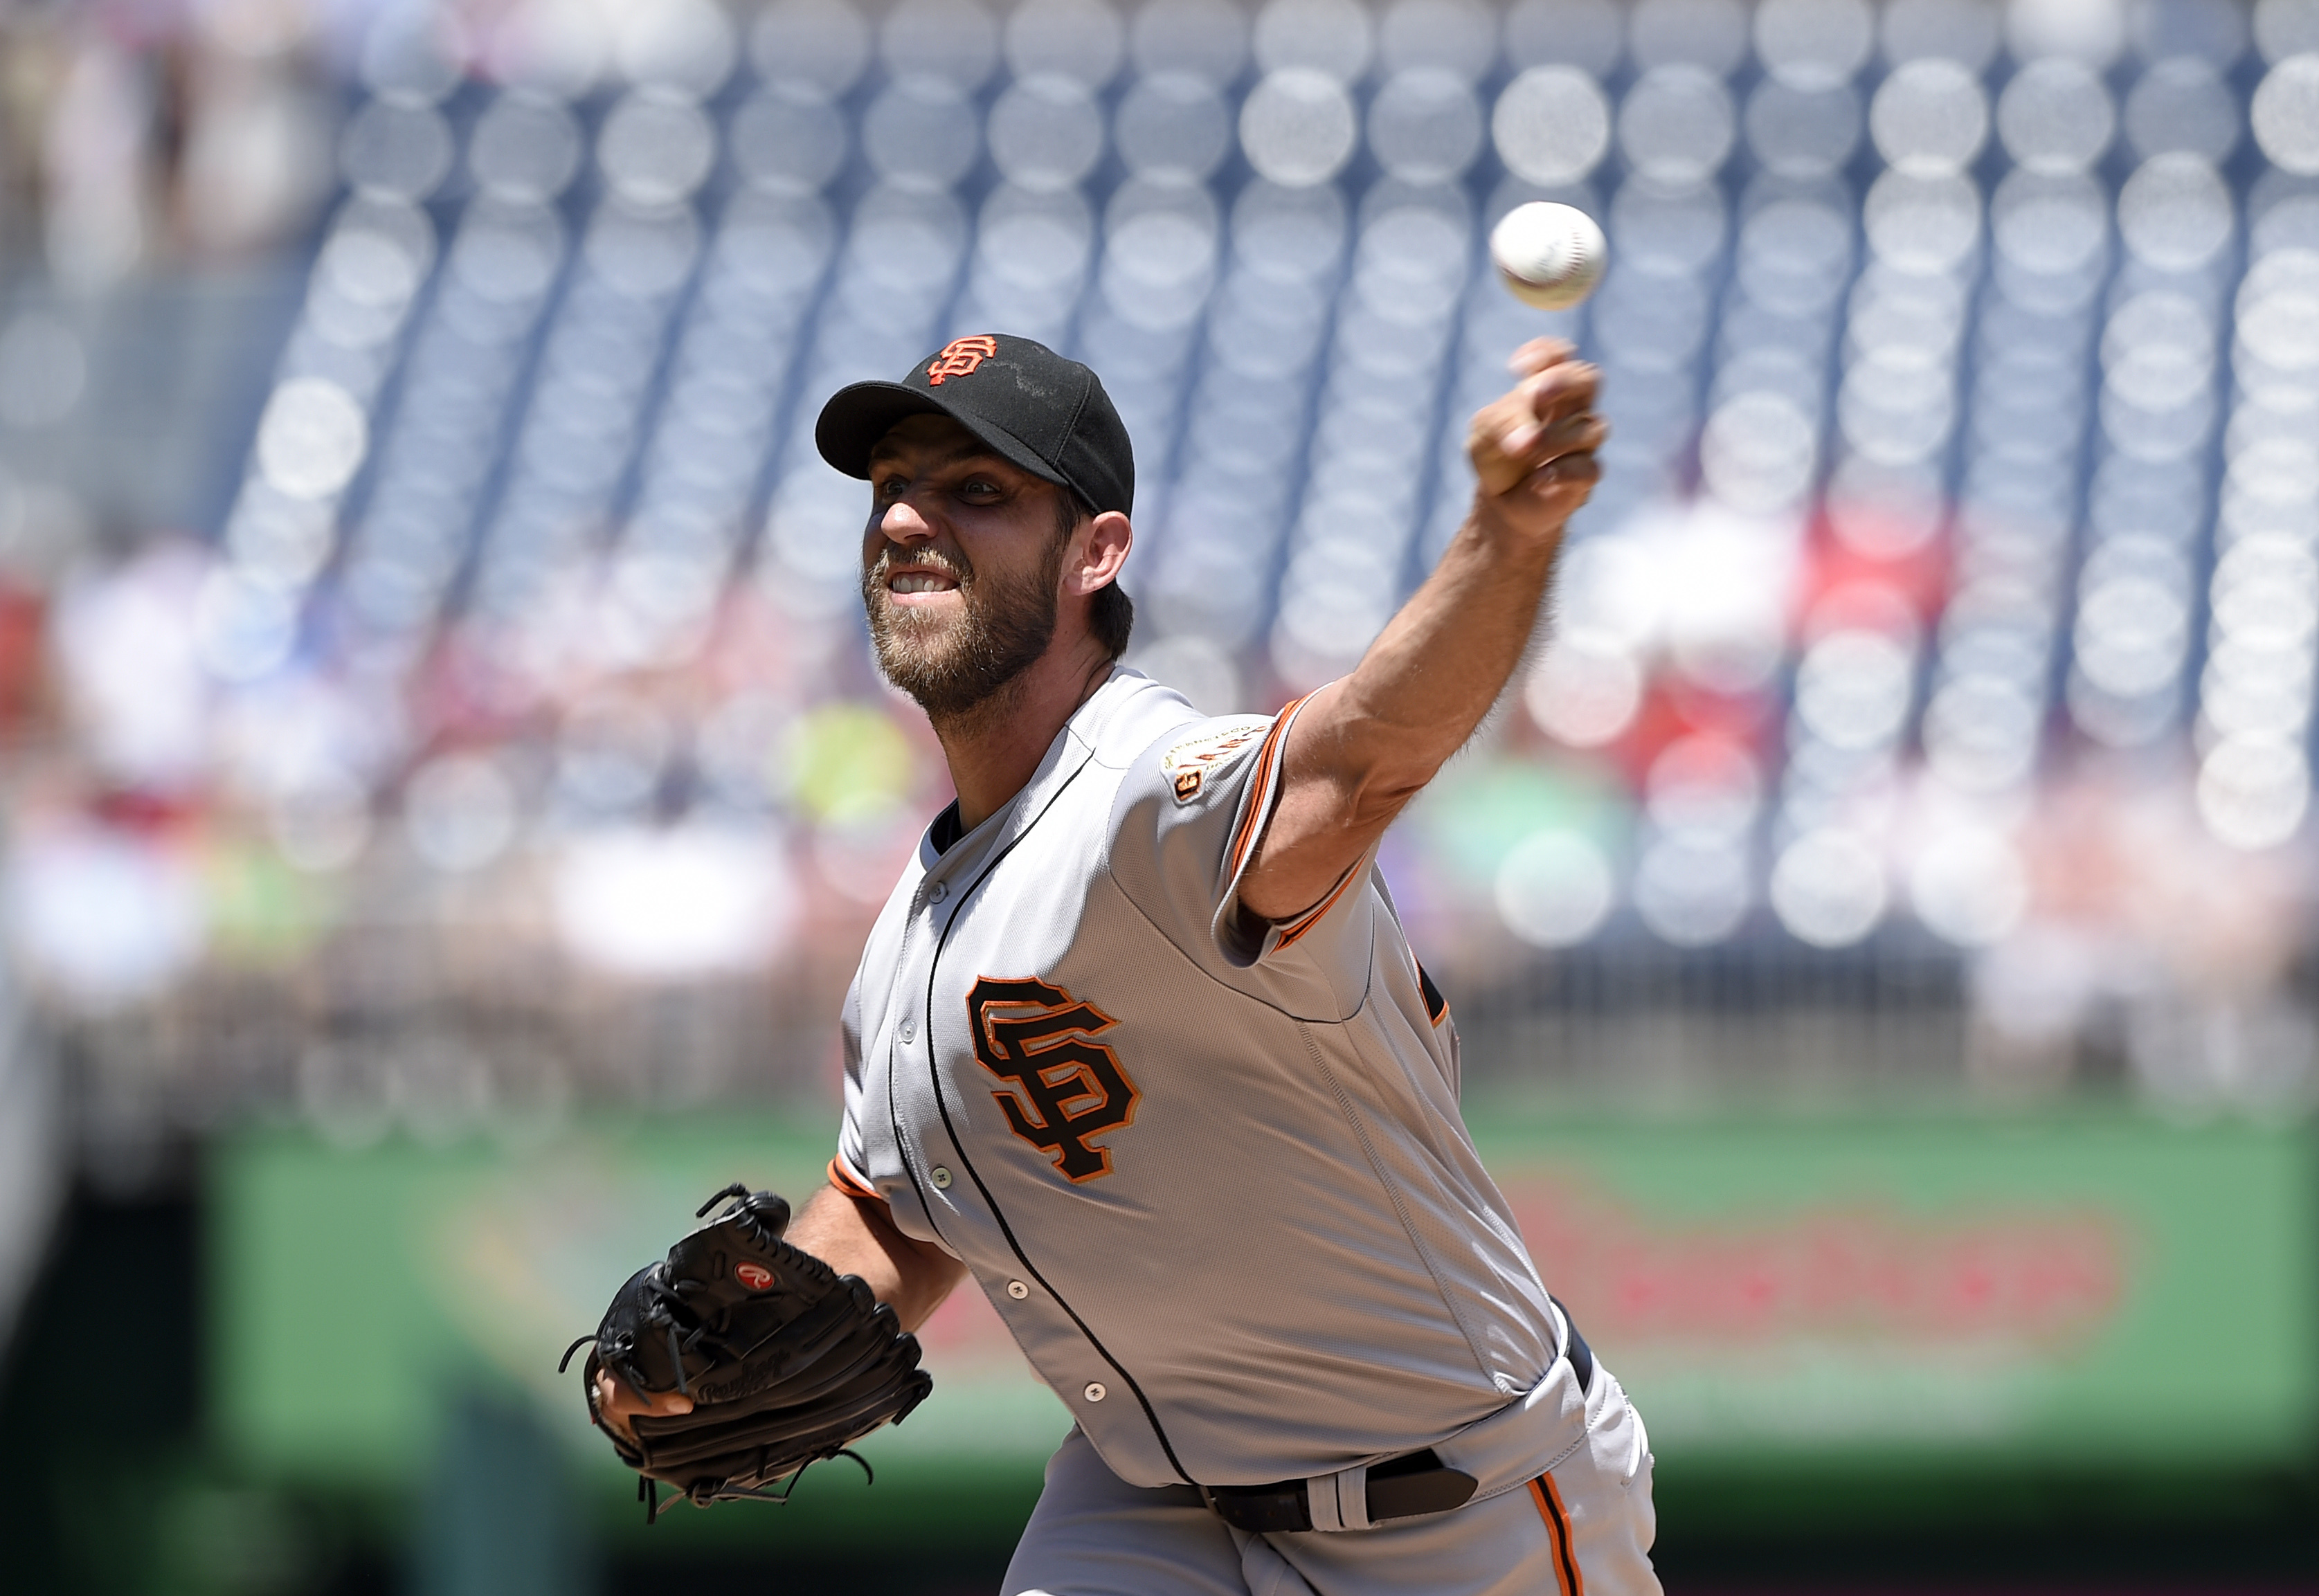 San Francisco Giants starting pitcher Madison Bumgarner delivers during the first inning of a baseball game against the Washington Nationals, Sunday, Aug. 7, 2016, in Washington. (AP Photo/Nick Wass)